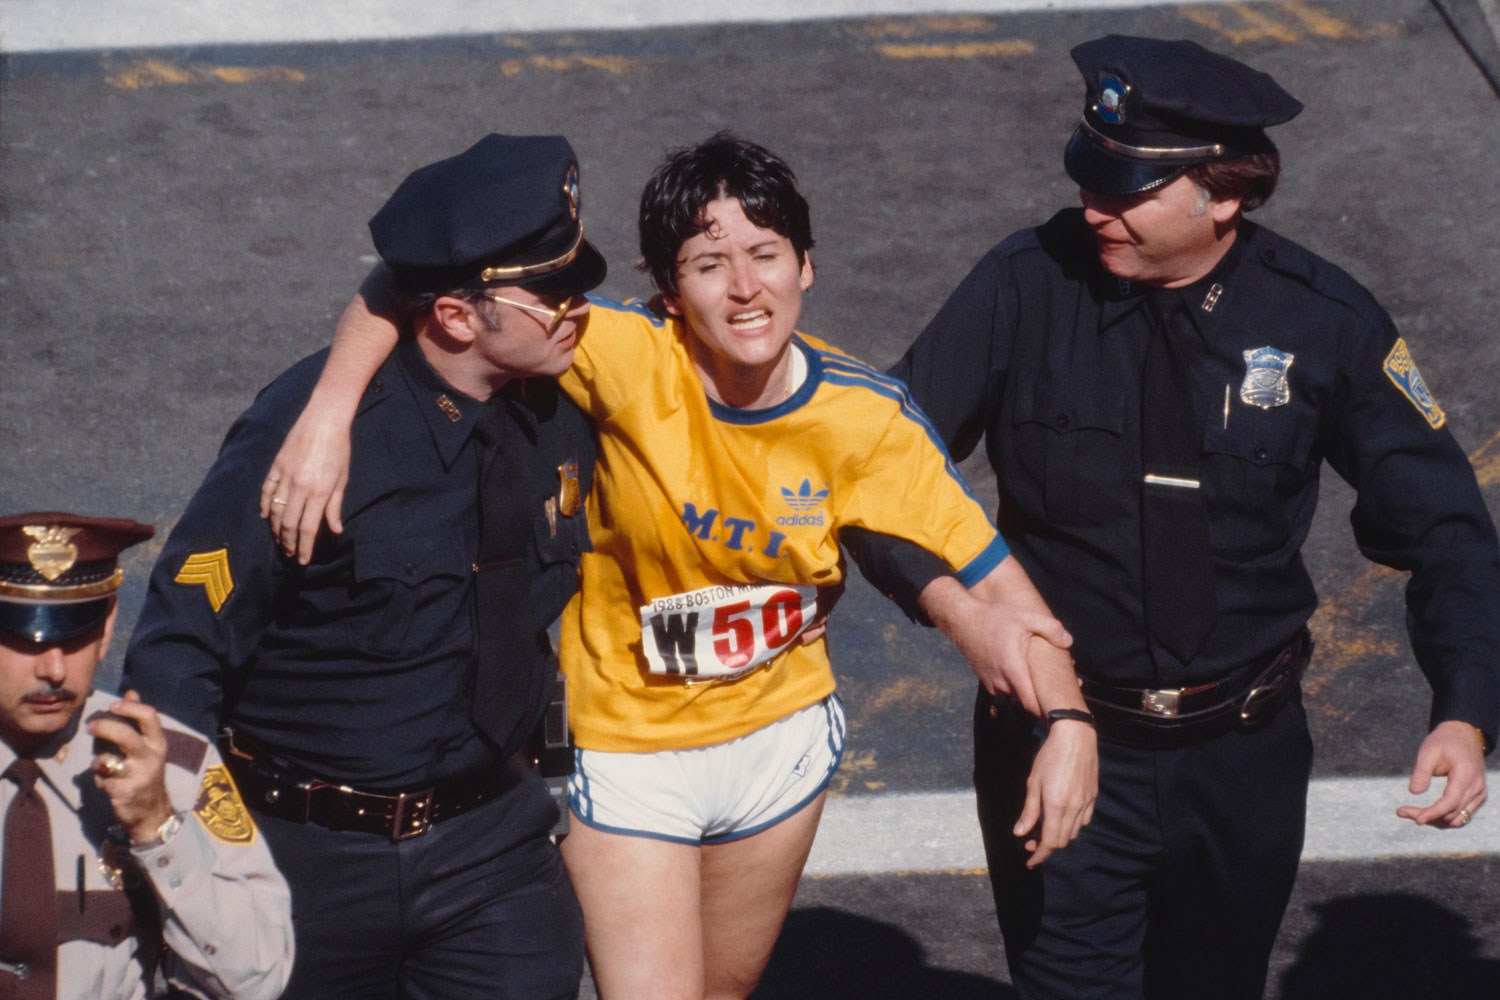 Rosie Ruiz is shown moments after crossing the finish line of the 84th Boston Marathon in April 1980. Ruiz was later stripped of the victory after it was revealed she hadn't completed the entire race.